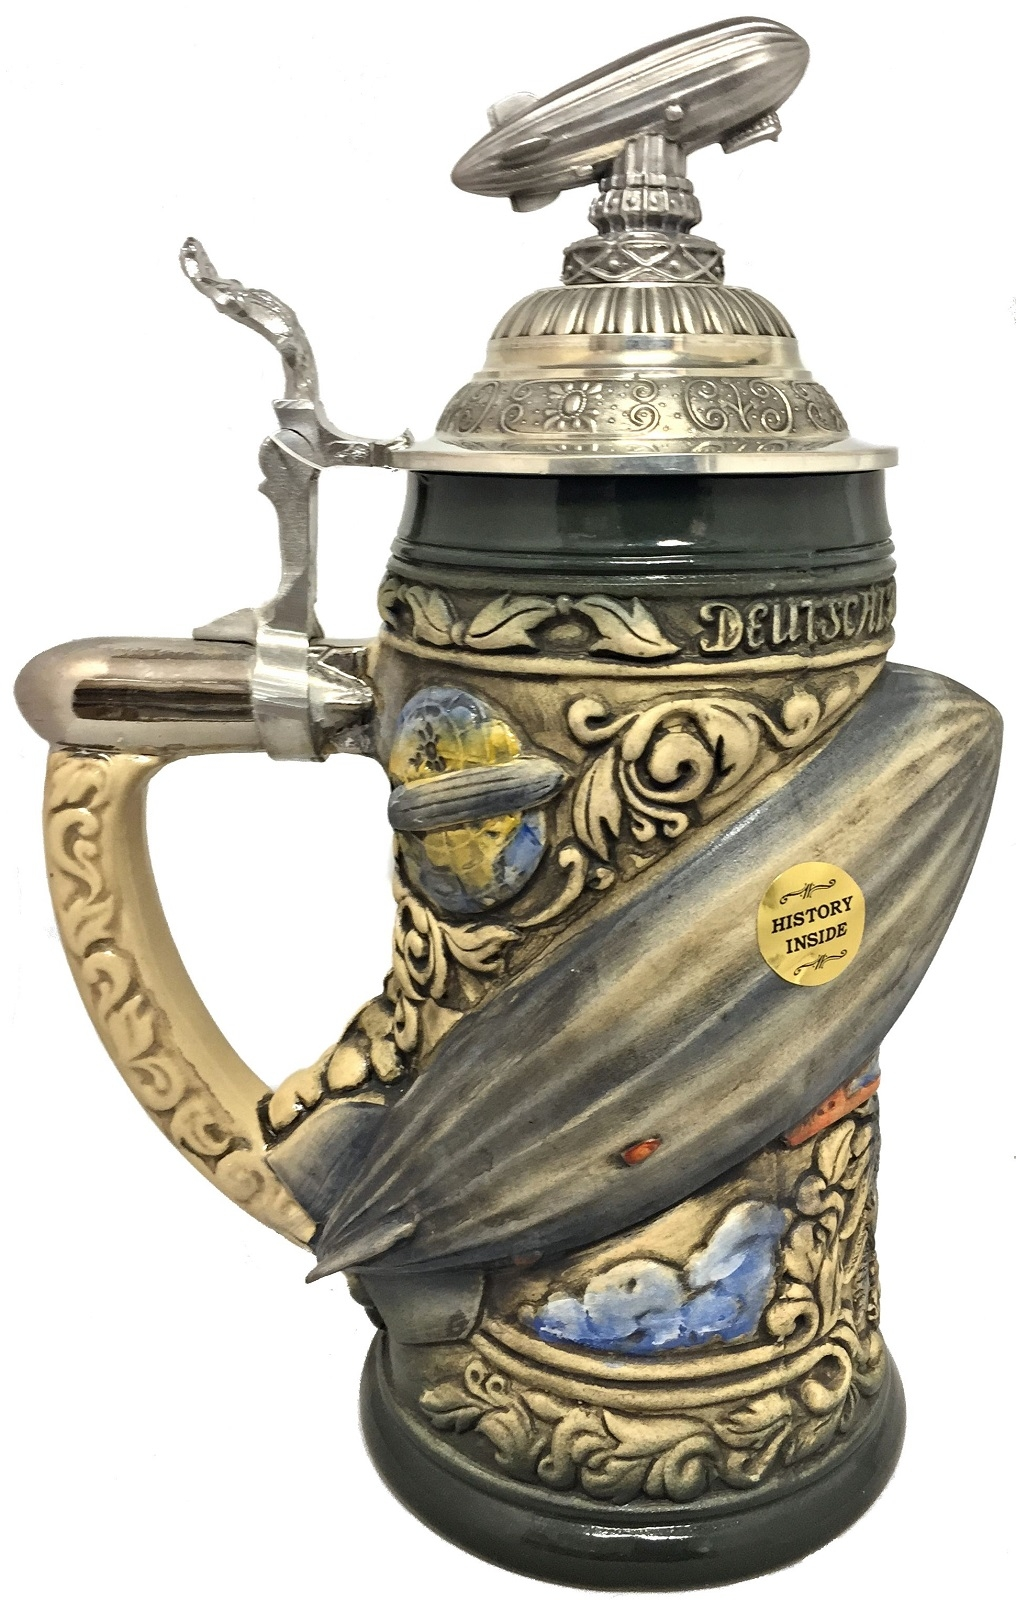 Rustic Zeppelin Blimp Airship with 3D Pewter Lid LE German Beer Stein .75 L